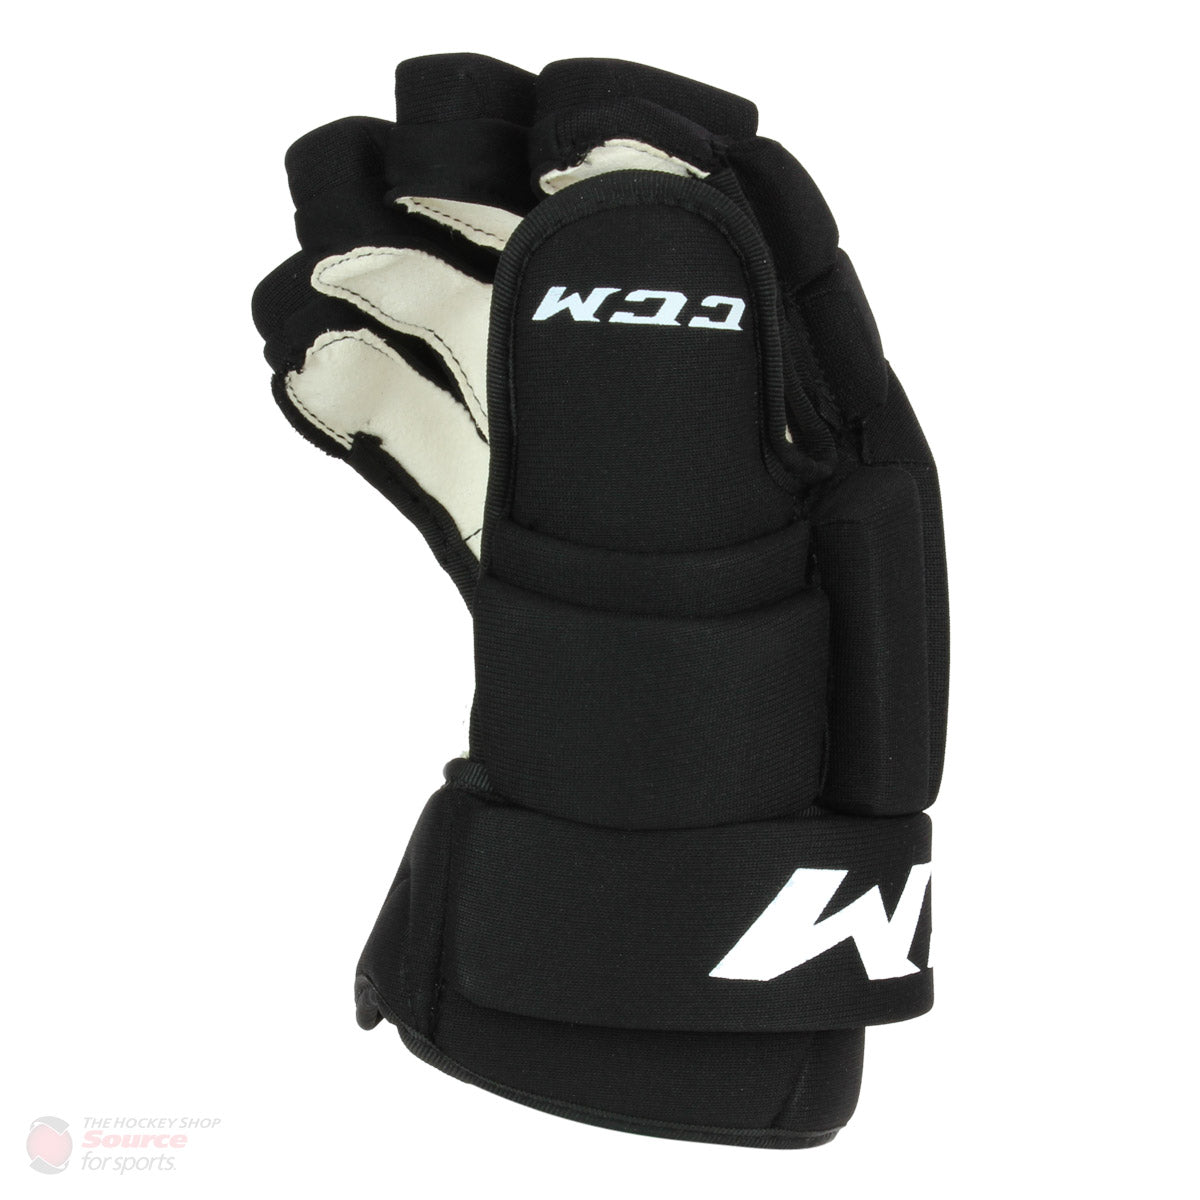 641d37c1d2a CCM Tacks 4R Senior Gloves – The Hockey Shop Source For Sports